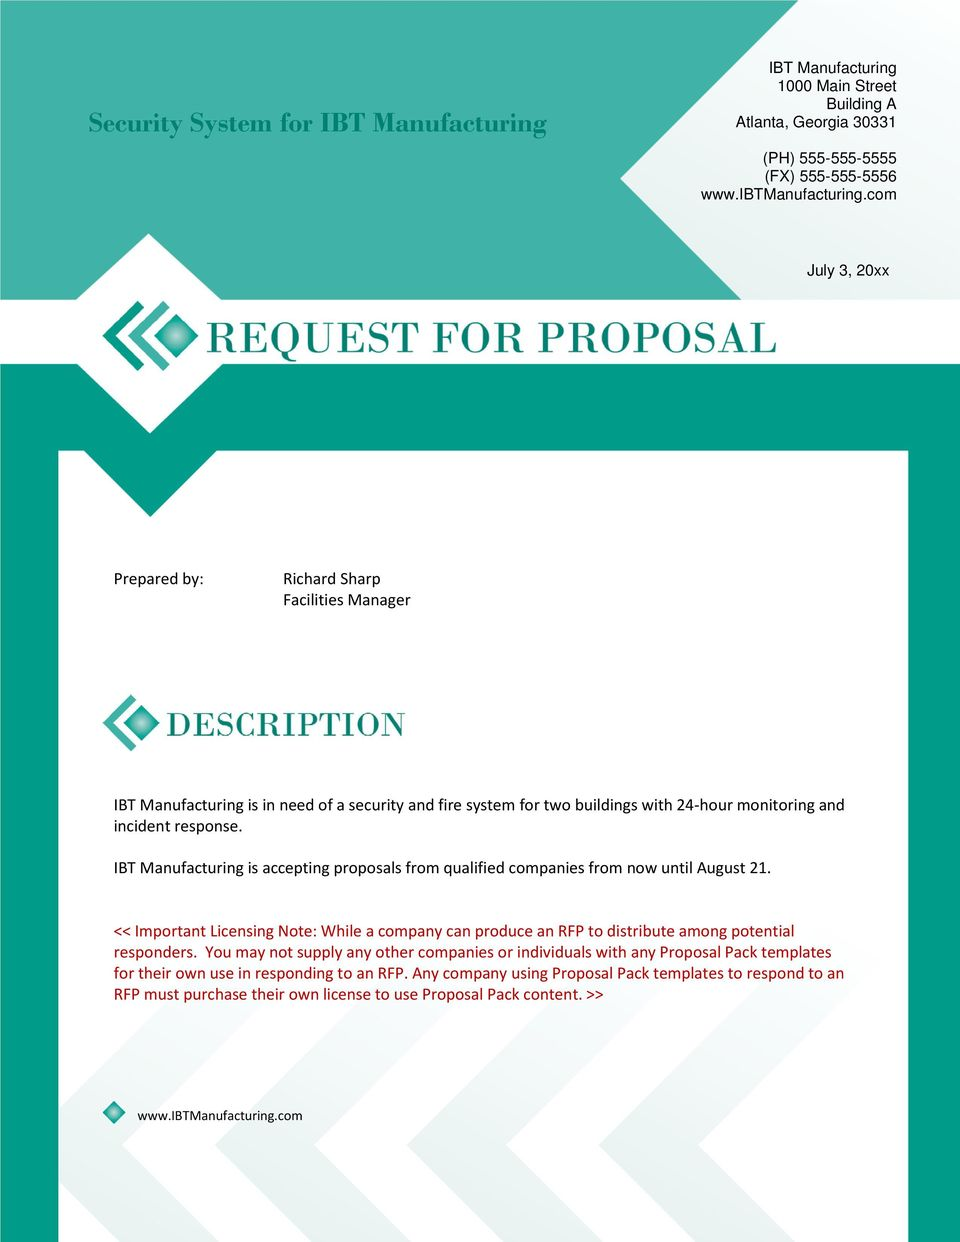 Request for Proposal (RFP) Sample - PDF